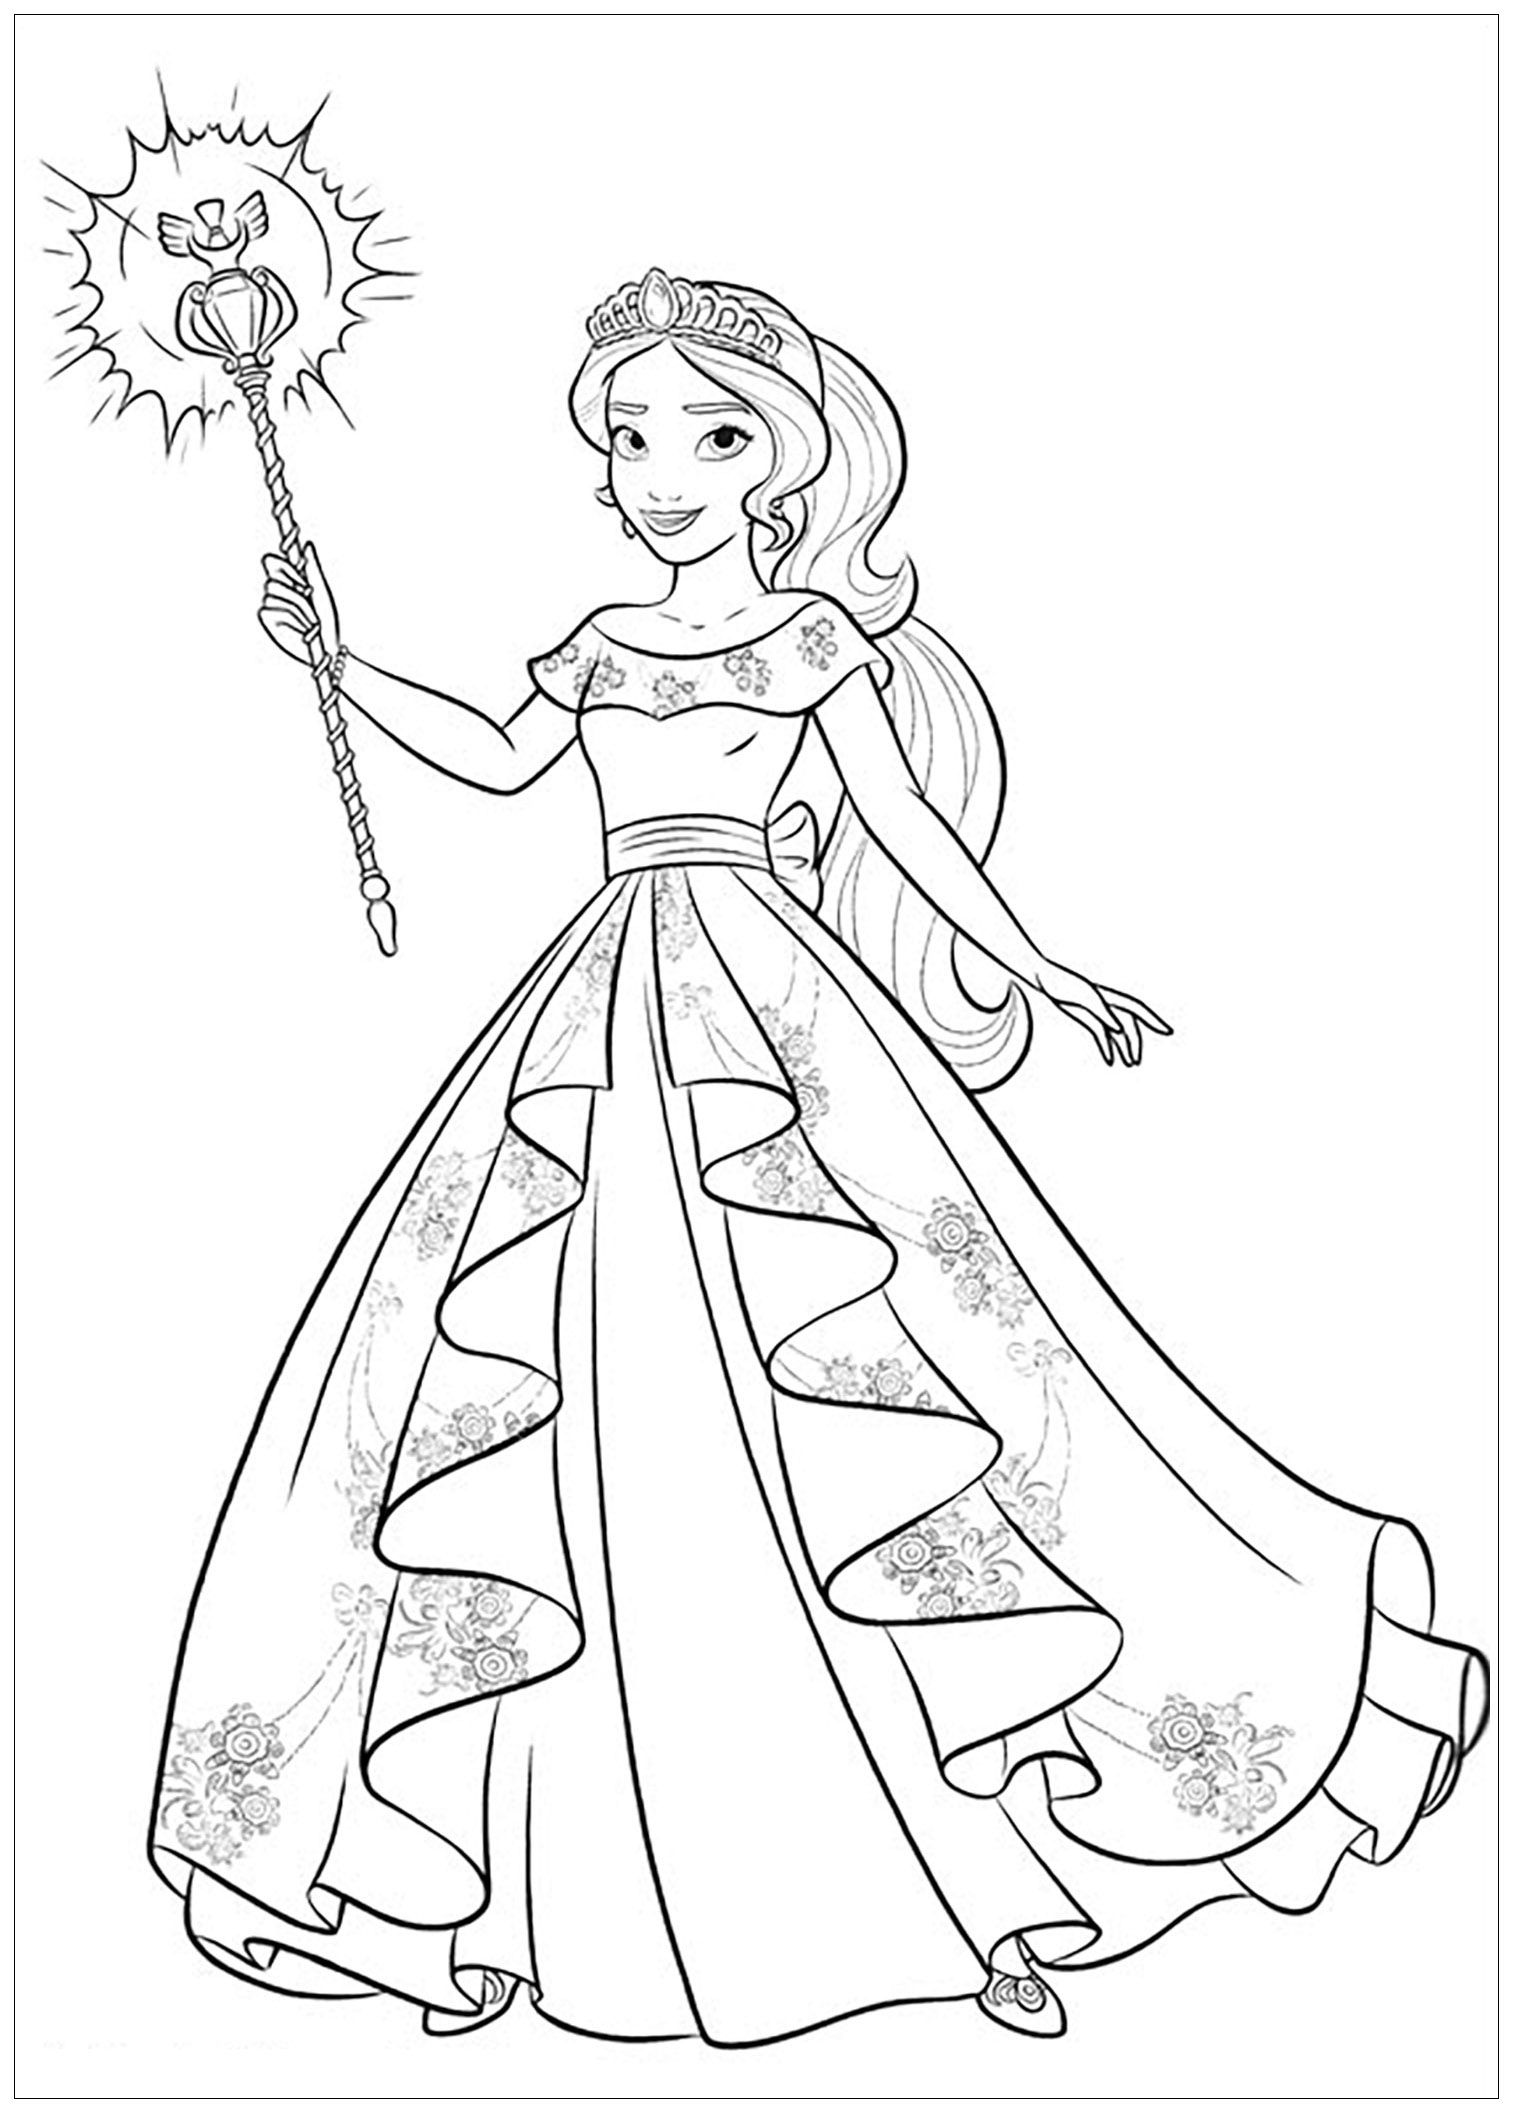 Pin by Get Highit on Coloring Pages | Puppy coloring pages ...